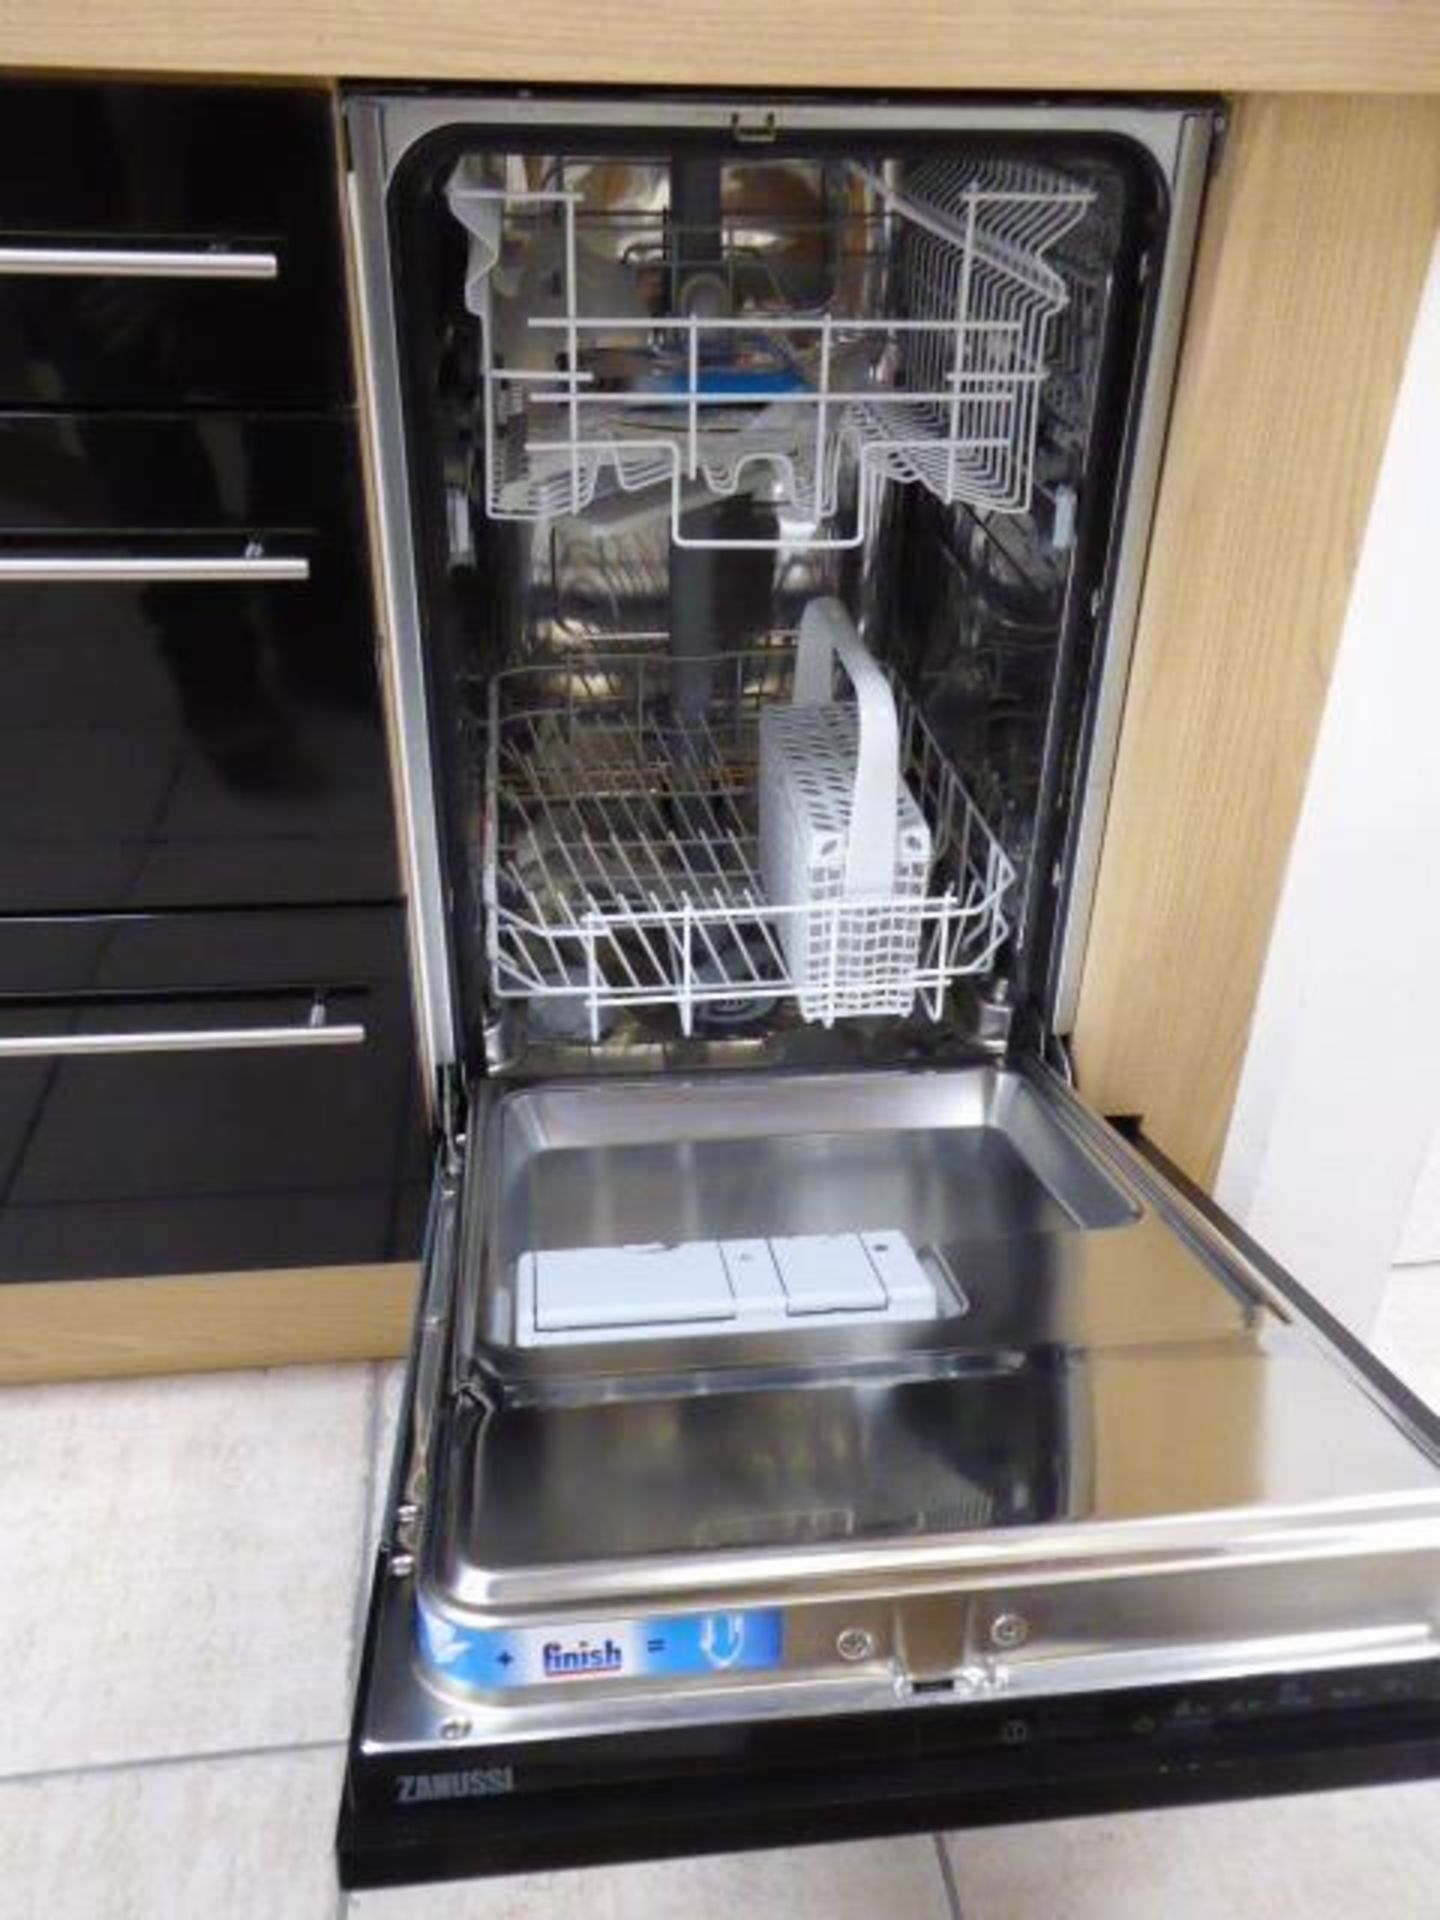 Lot 7 - Alto gloss black galley kitchen measuring 370cm long with light oak wood laminate worktops. With a 1